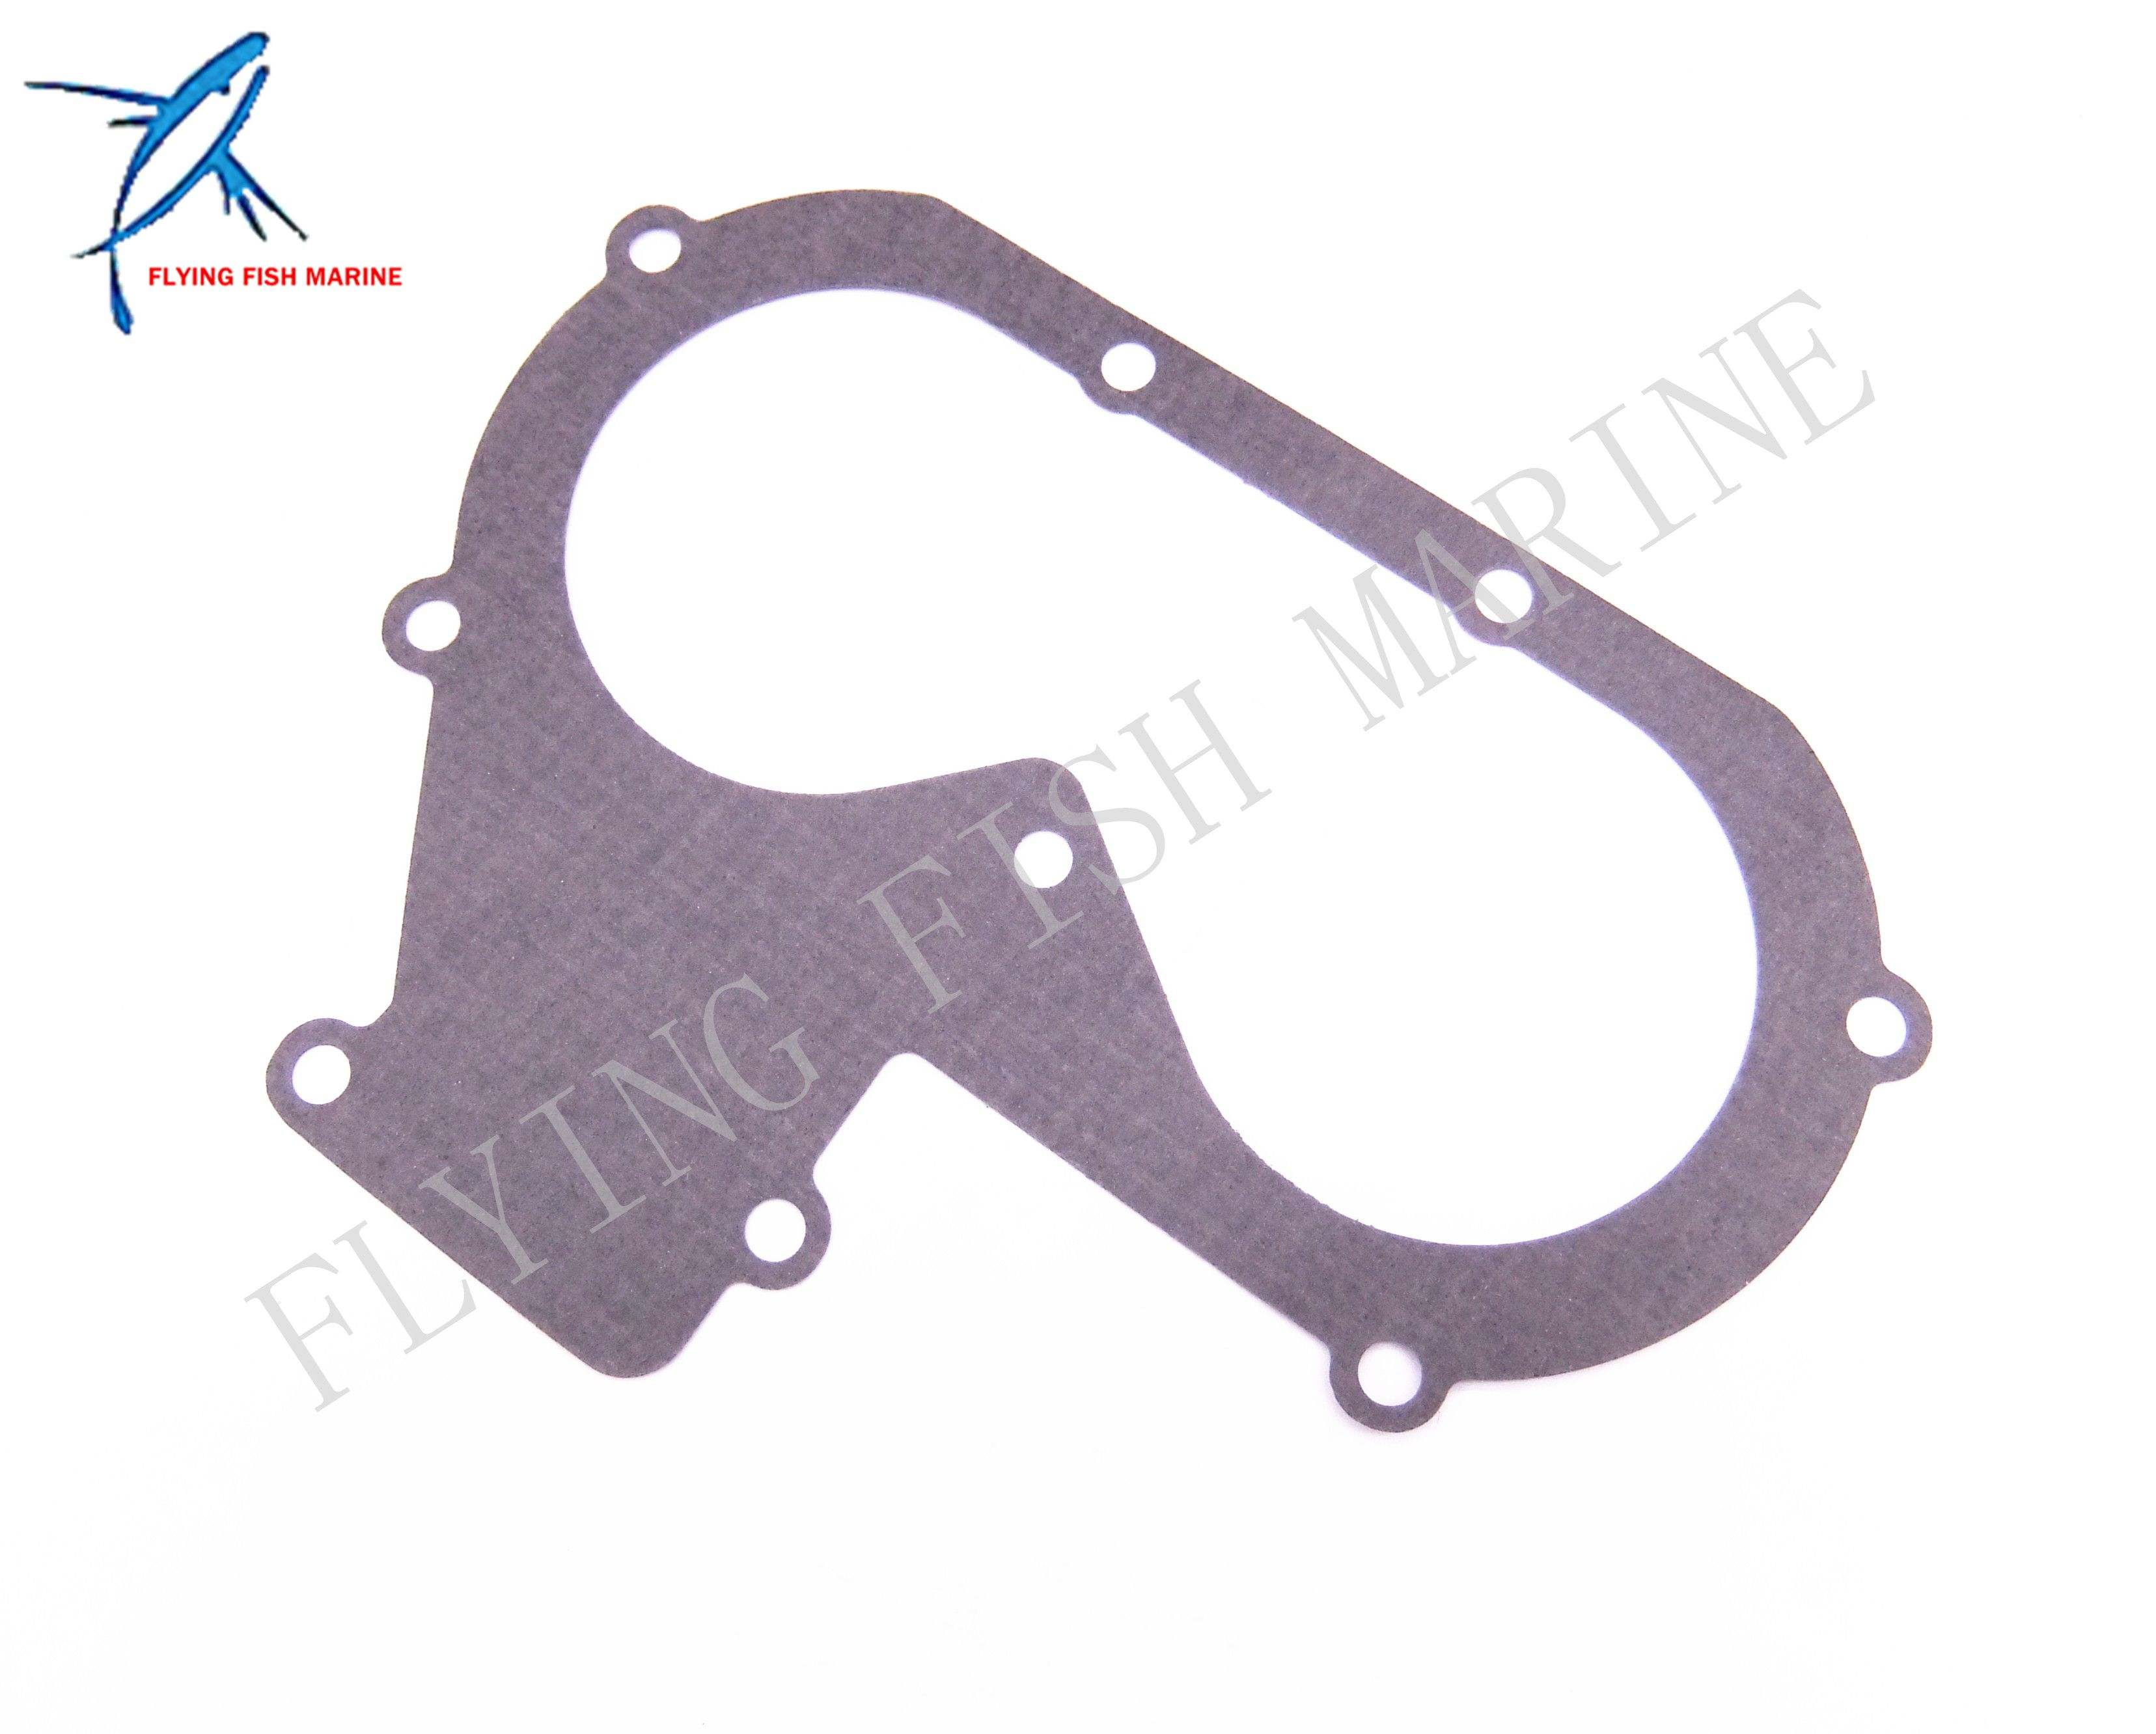 Outboard Engine 648-13645-A0 Manifold Gasket for Yamaha 2